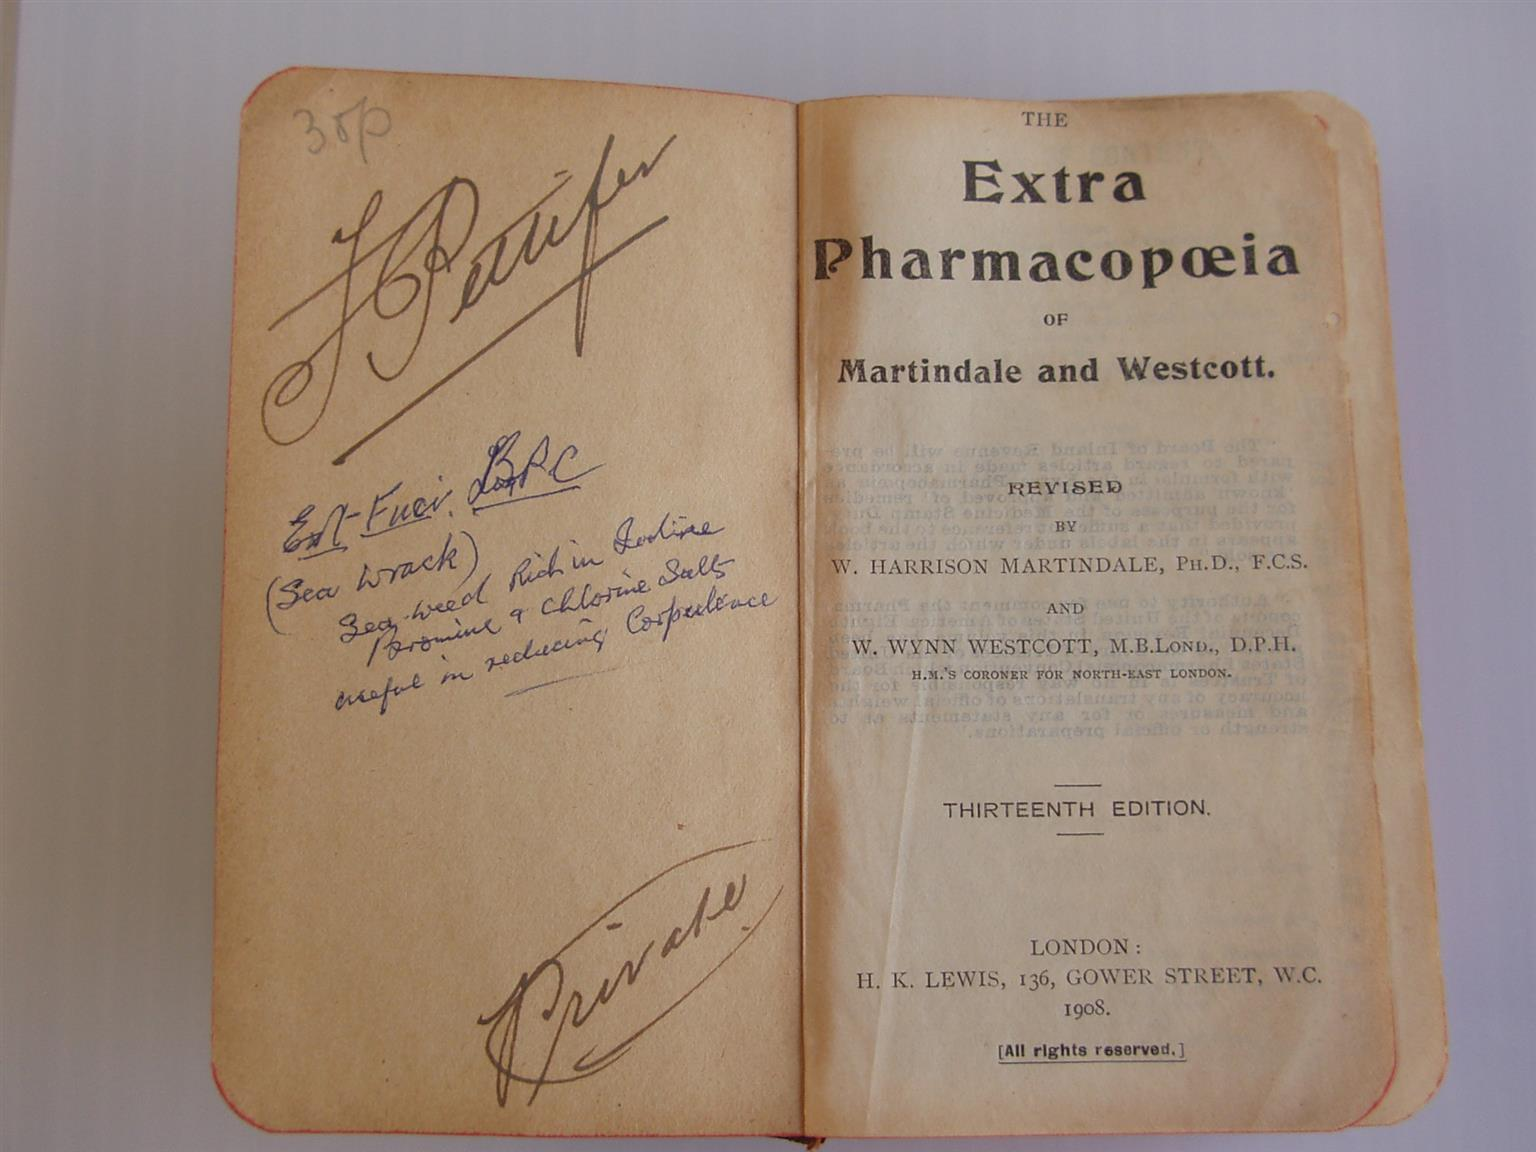 The Extra Pharmacopoeia 13 th  edition Edition by William Martindale and Westcott - 1908 London